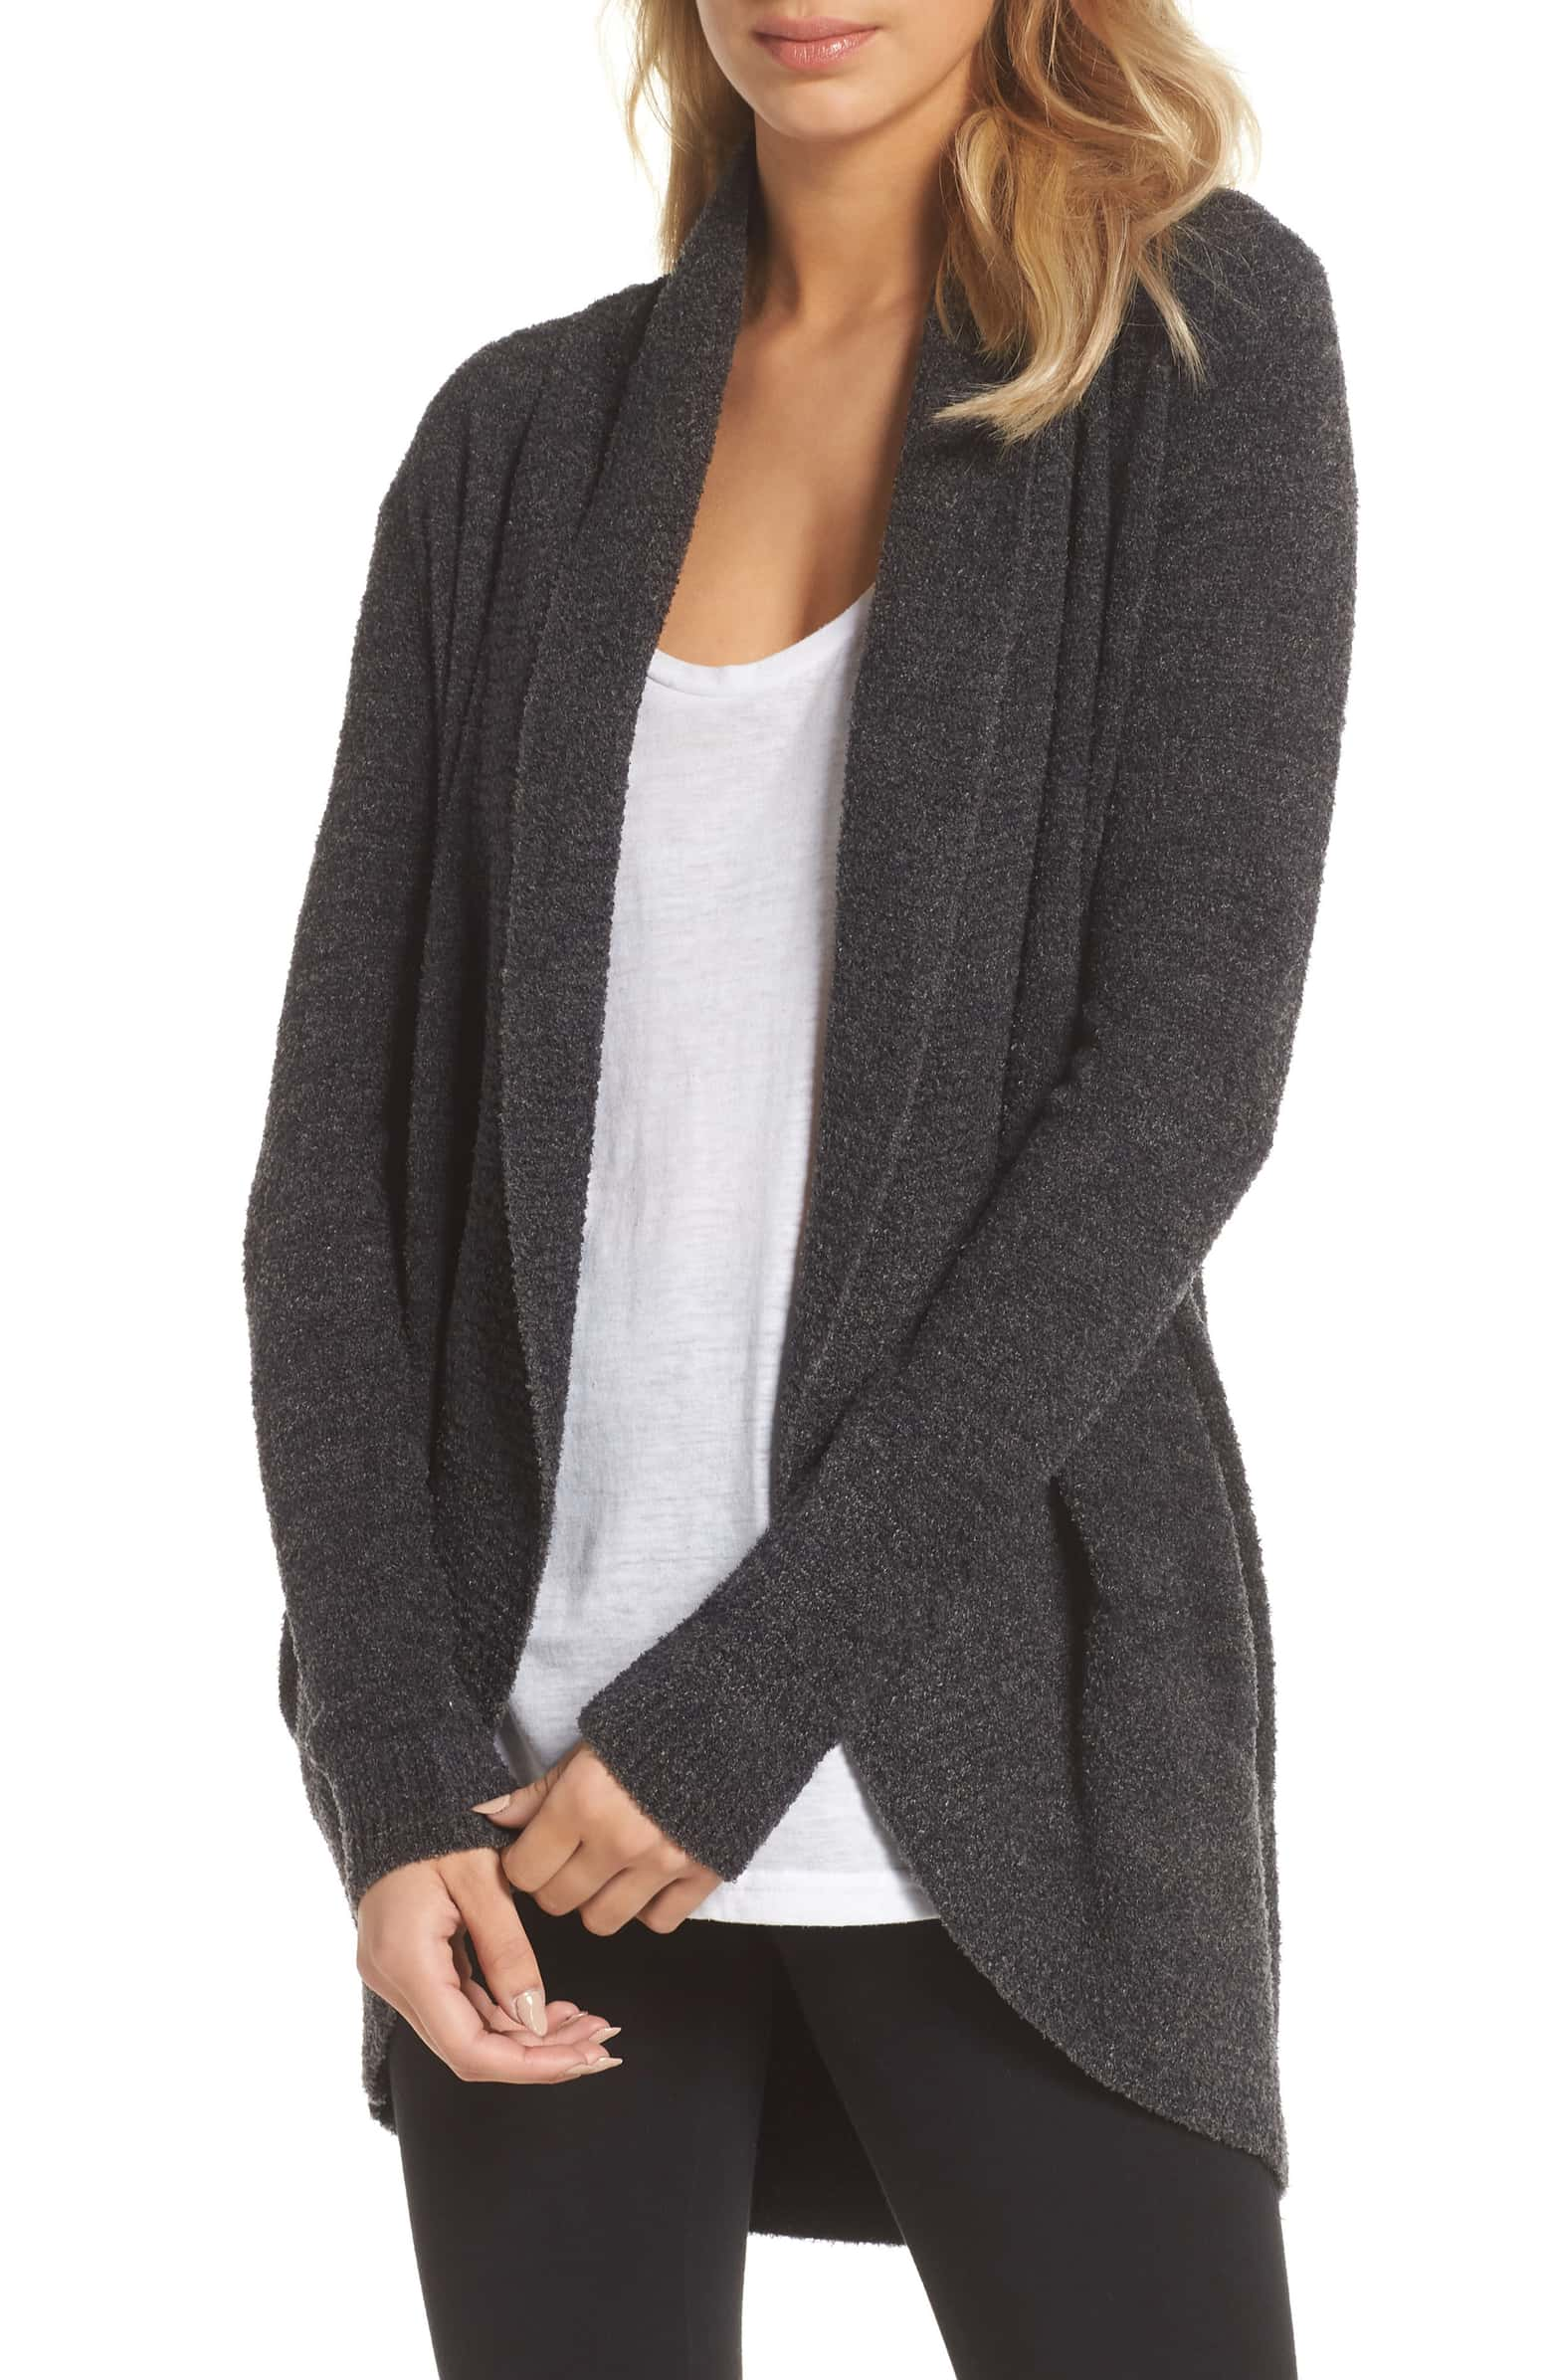 Barefoot Dreams CozyChic Light Circle Cardigan